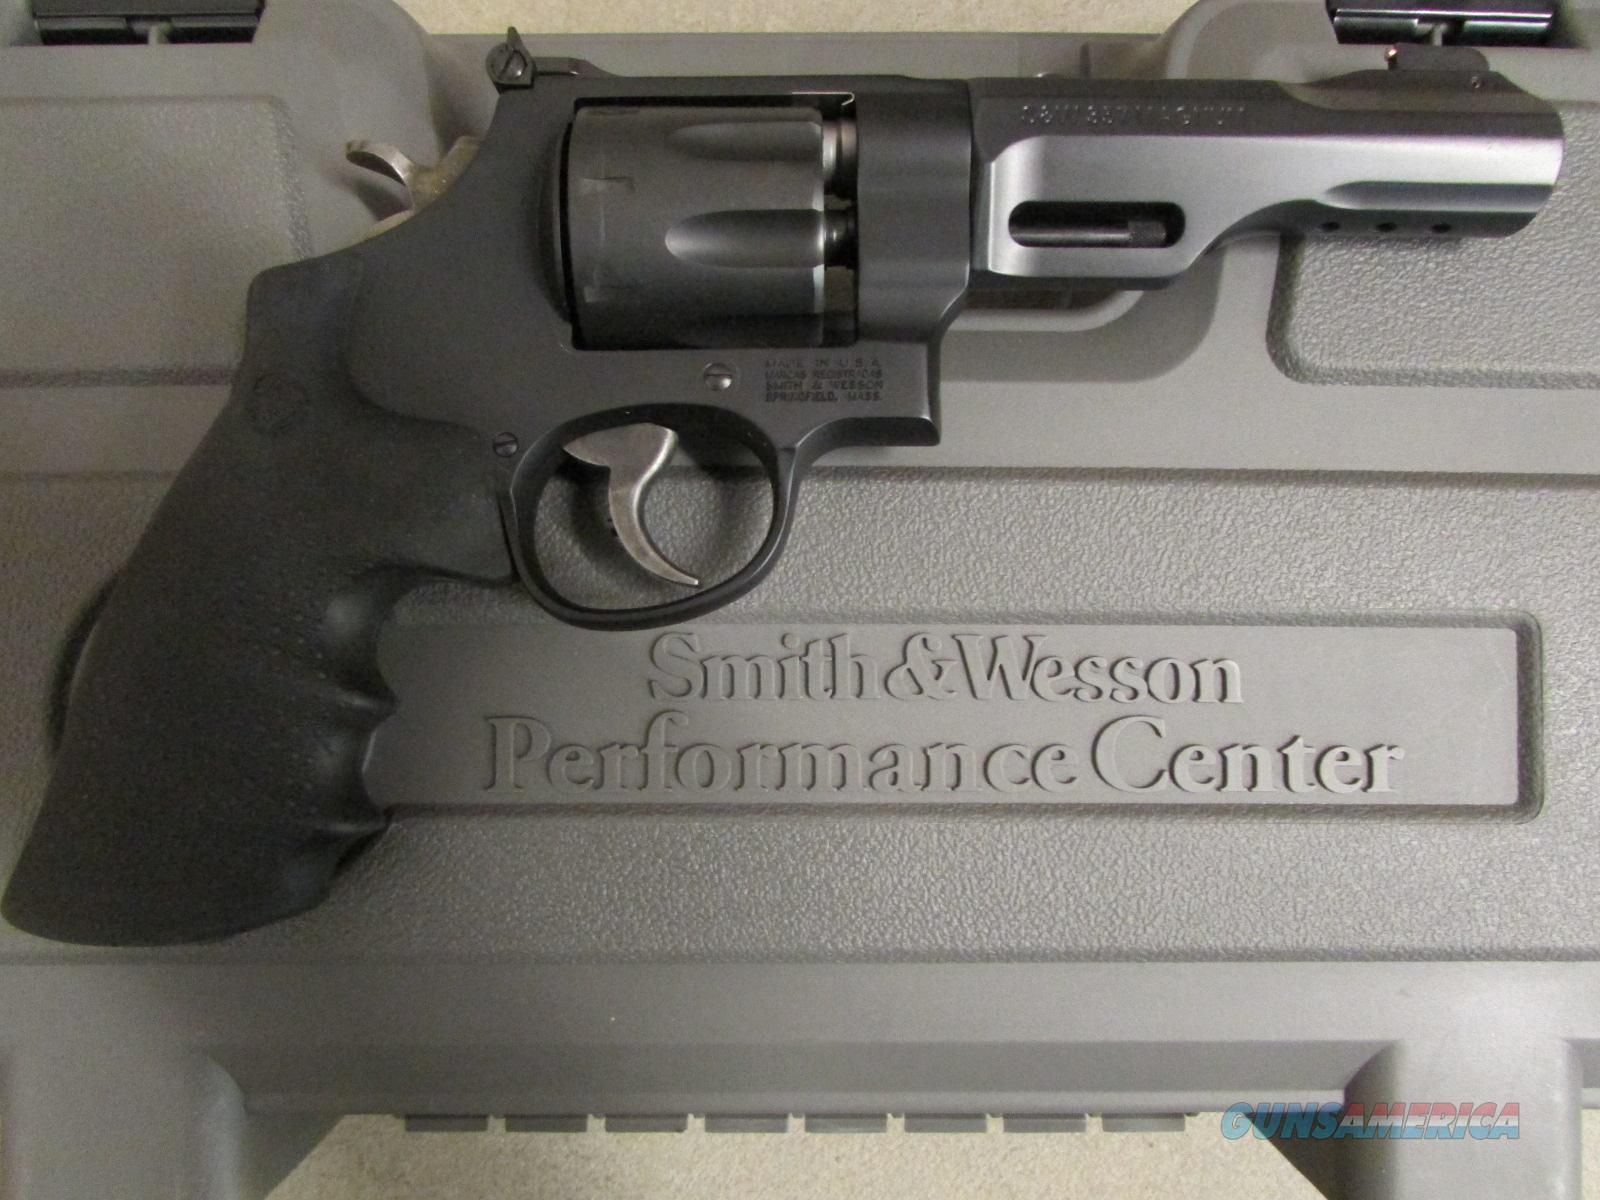 Smith & Wesson Performance Center 327 TRR8 8-Shot .357 Mag ...